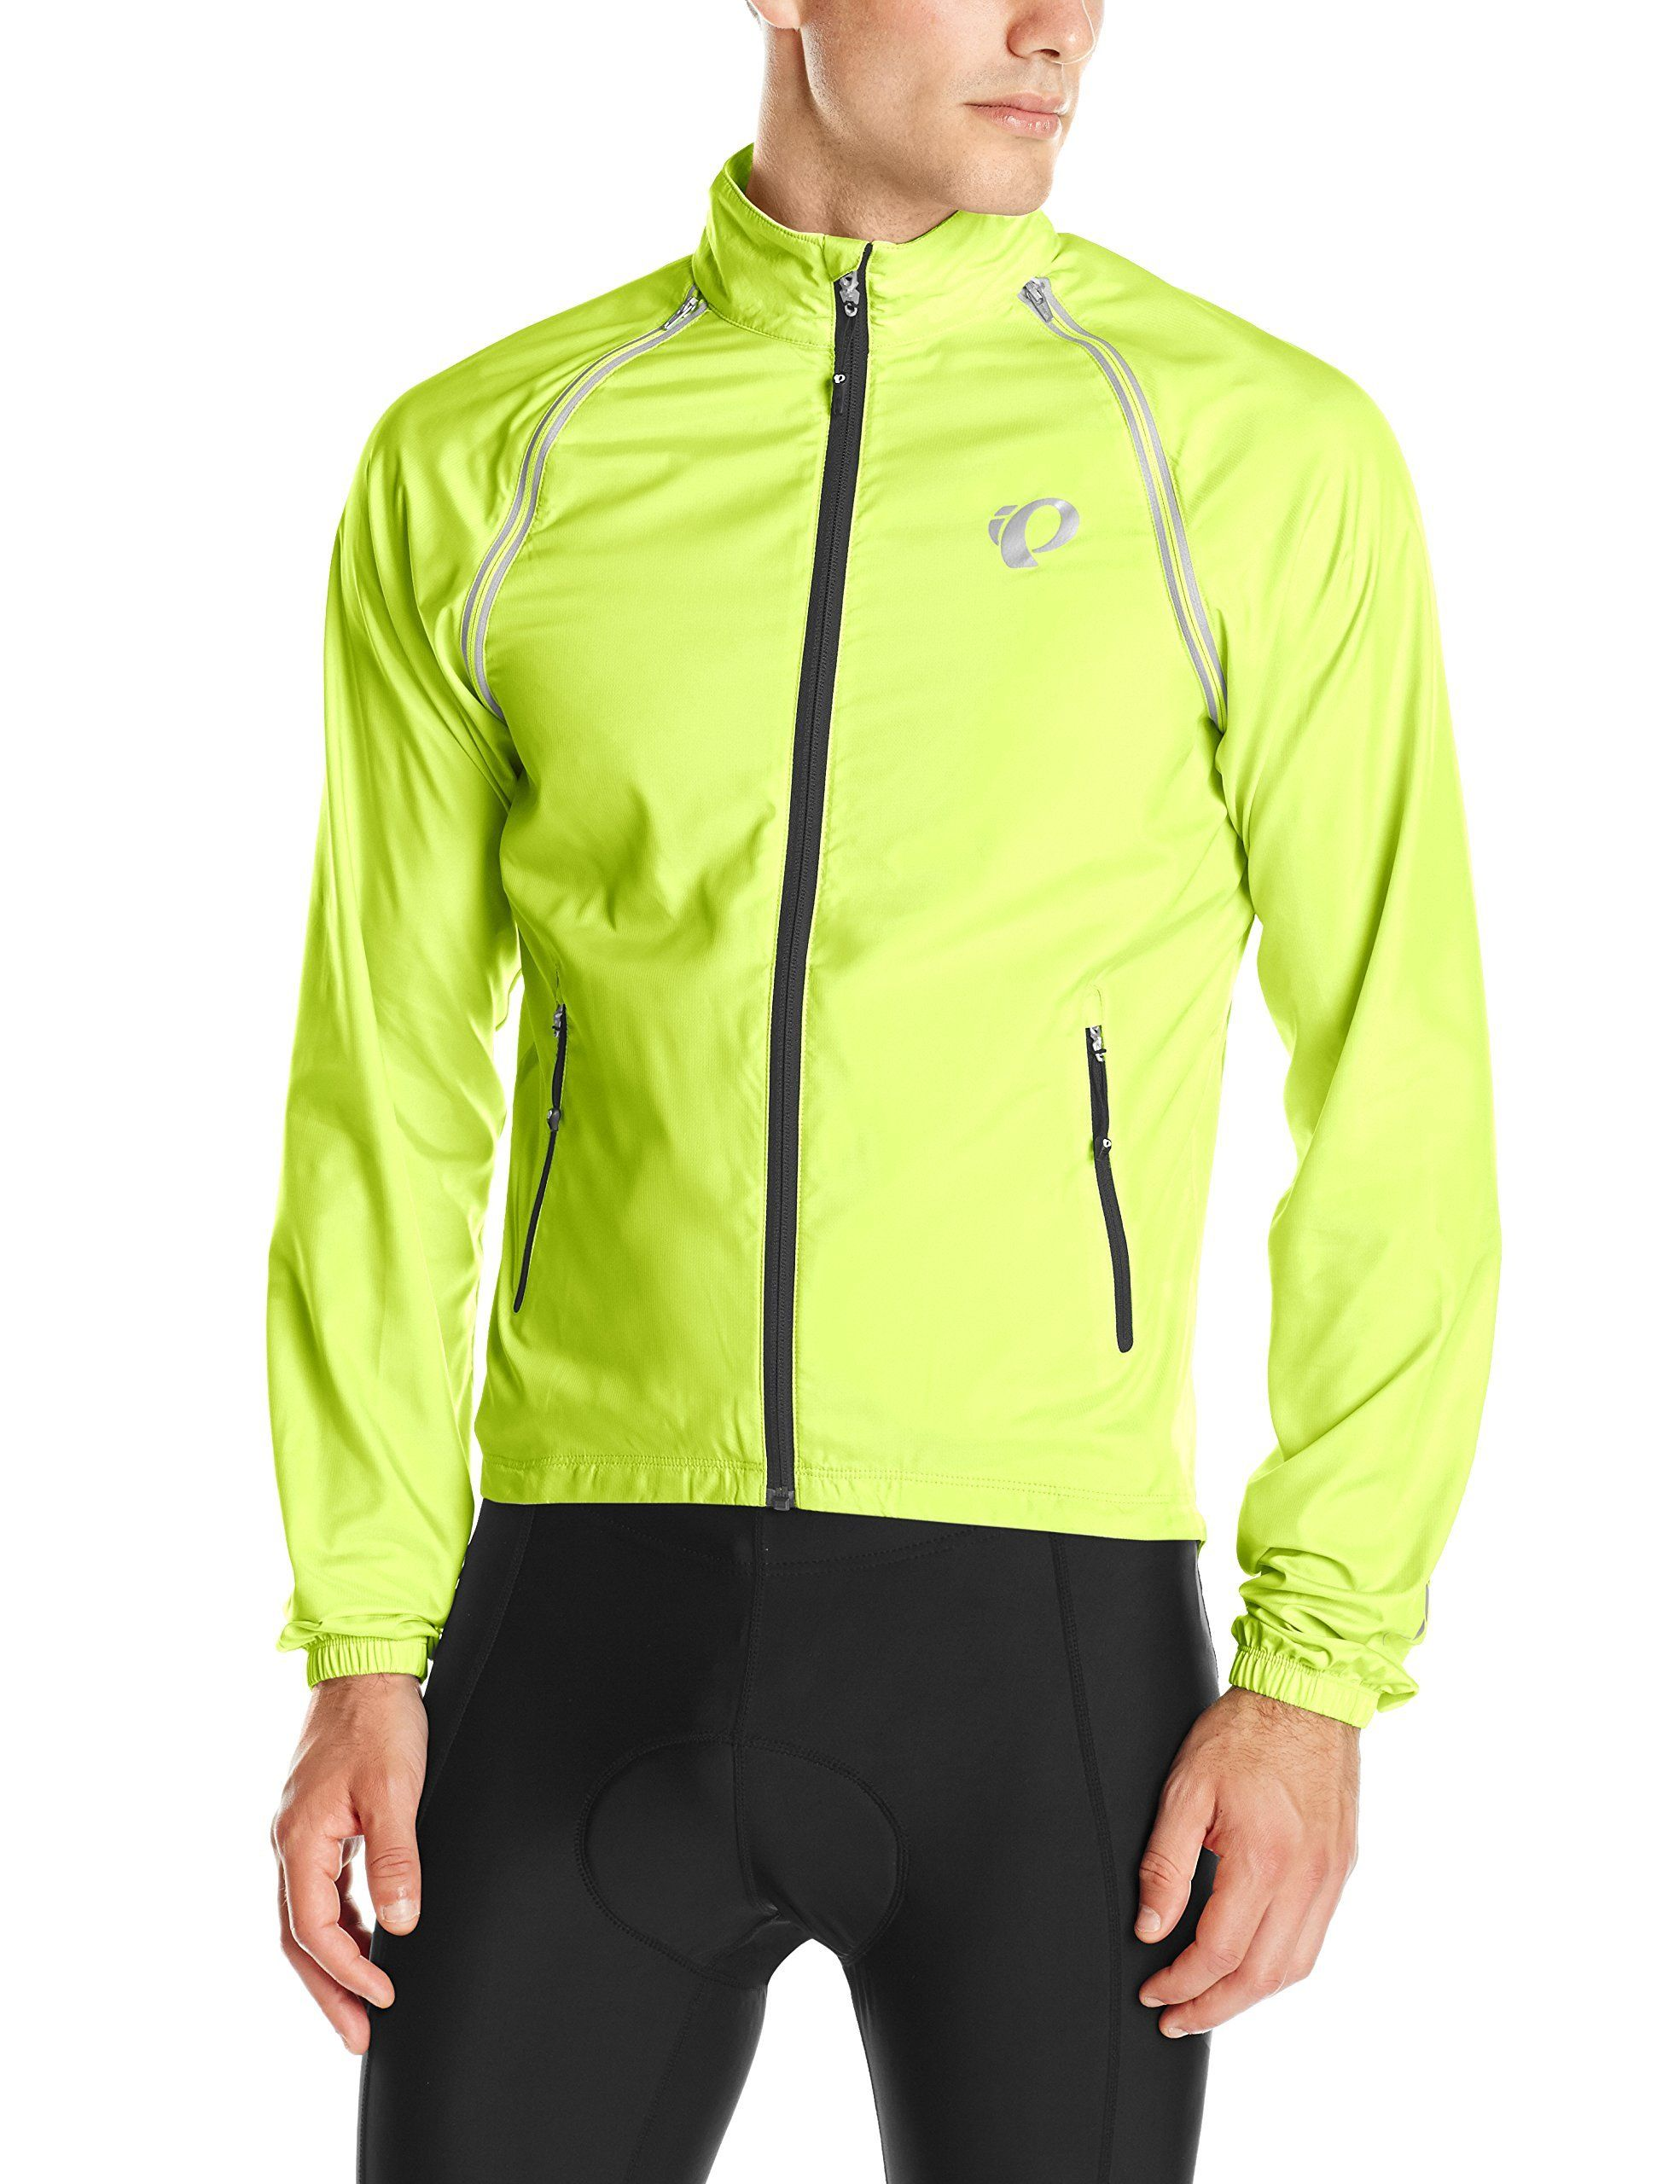 83e0e3351 Pearl Izumi - Ride Men s Elite Barrier Convertible Jacket